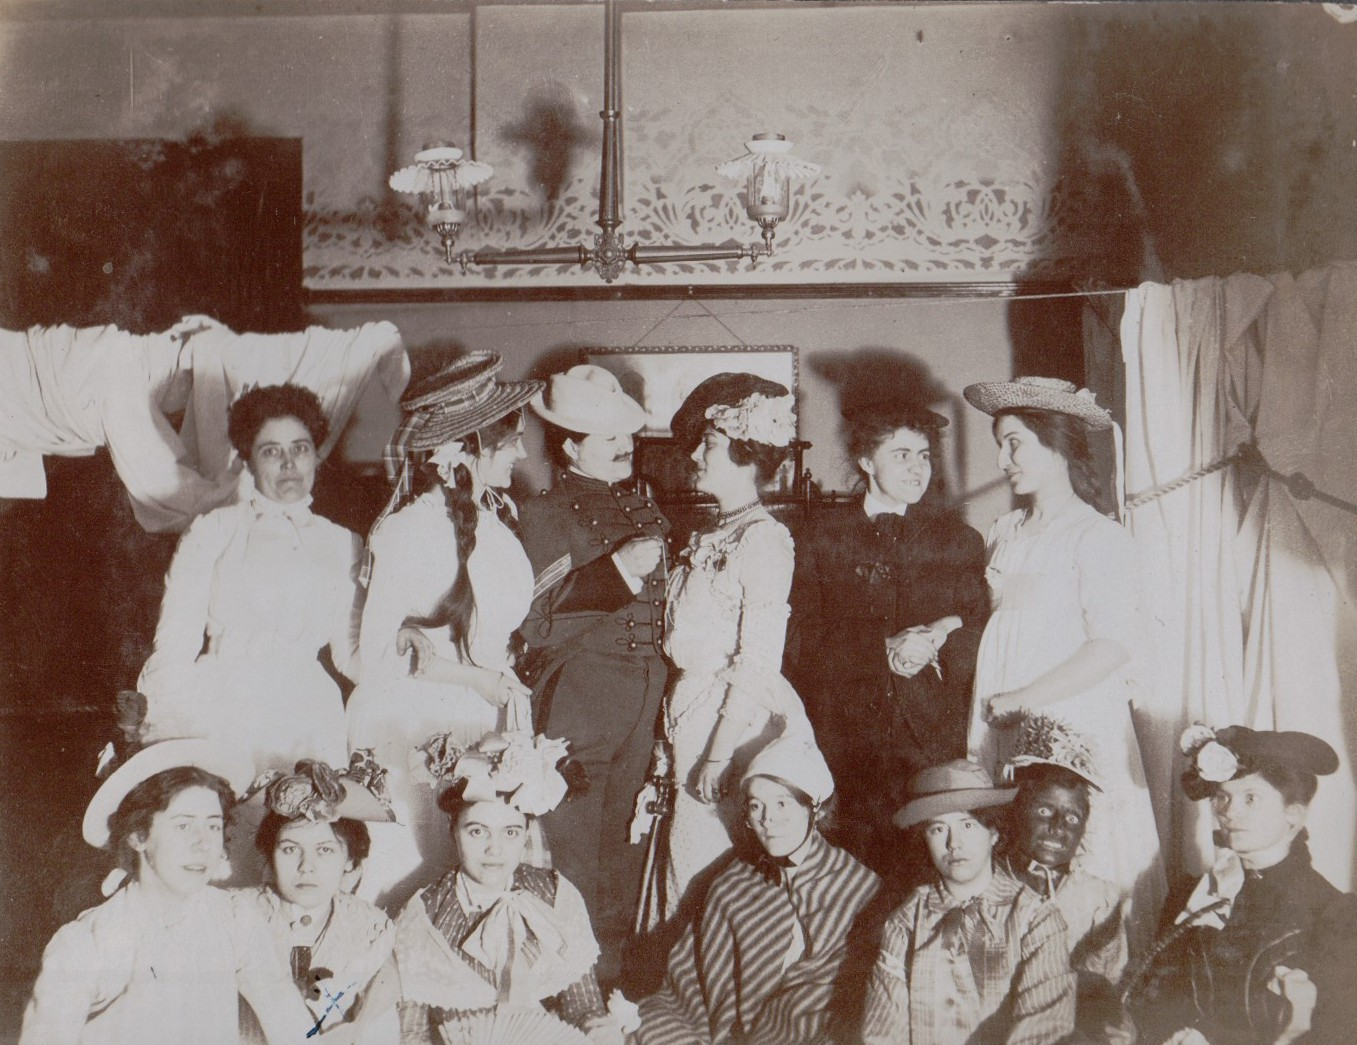 Photo Album of Young Women, Possibly of Delta Gamma Sorority At University of Michigan, Having a...